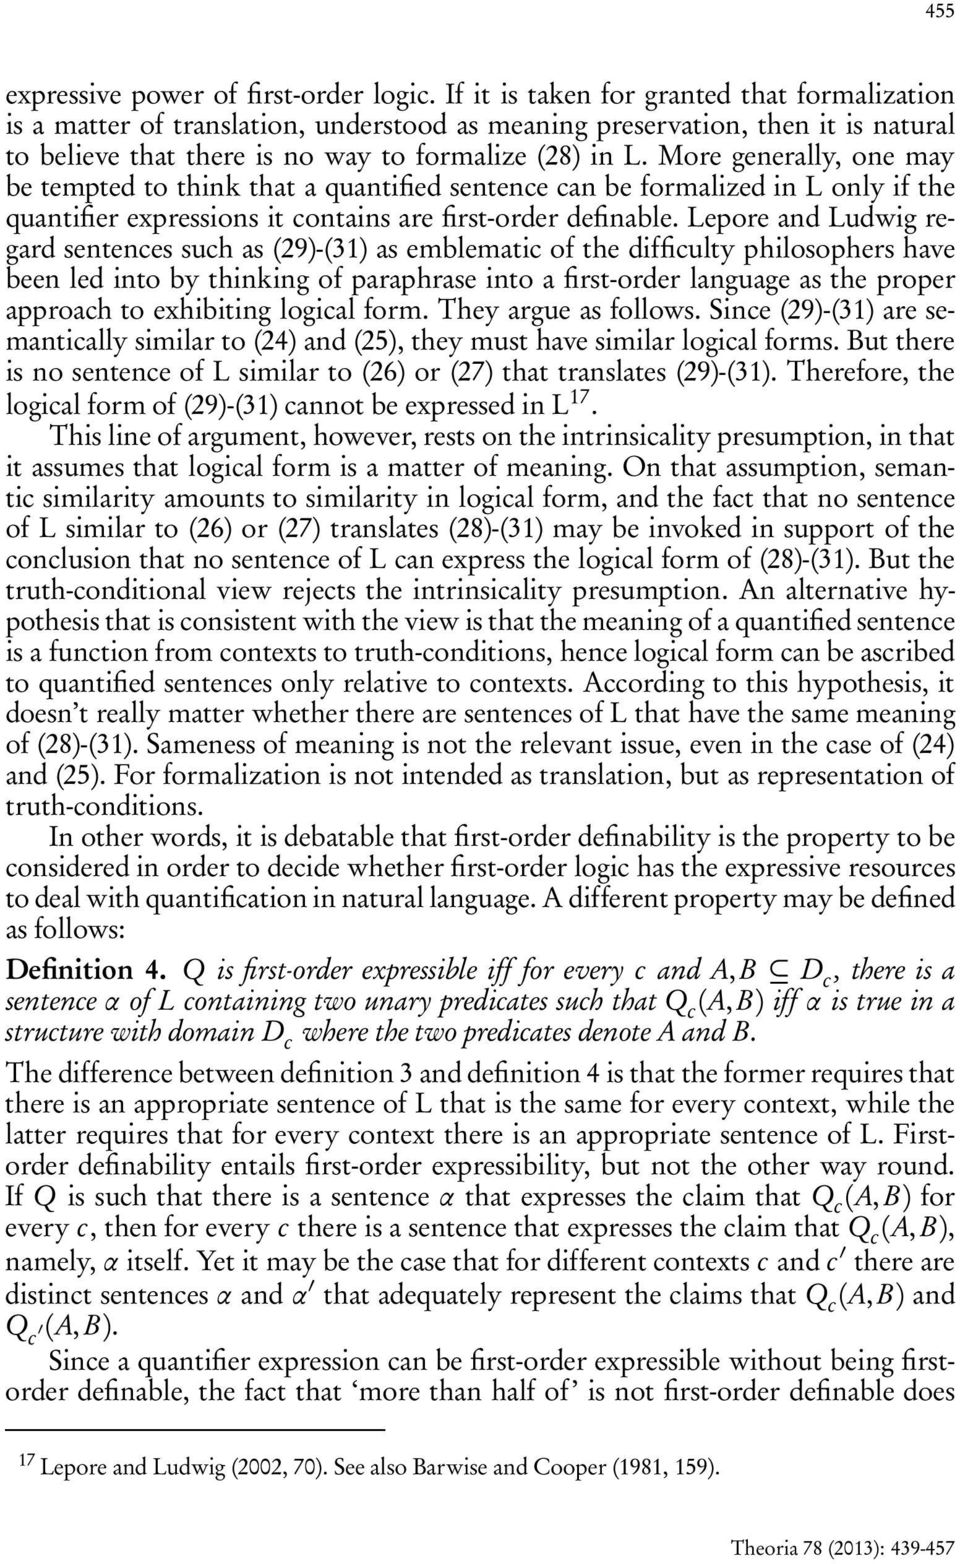 More generally, one may be tempted to think that a quantified sentence can be formalized in L only if the quantifier expressions it contains are first-order definable.